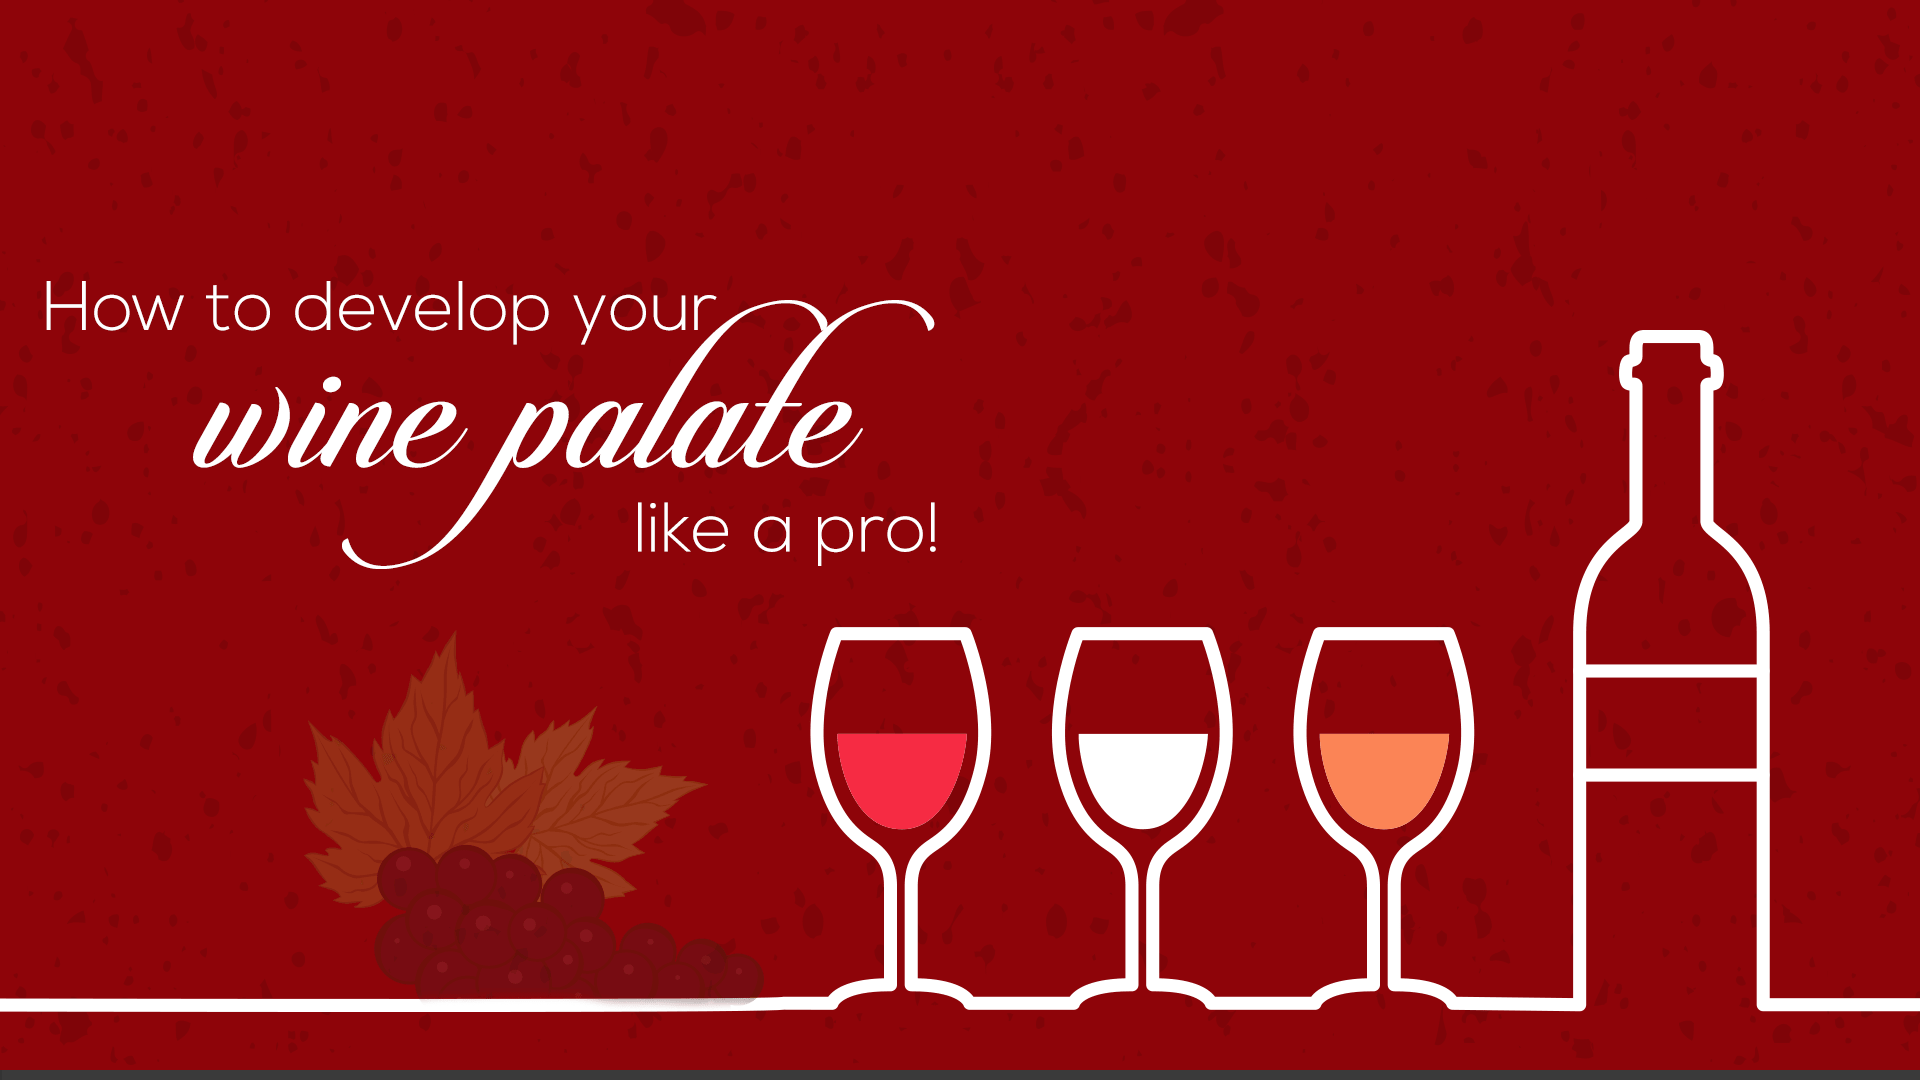 How to develop your wine palate like a pro!